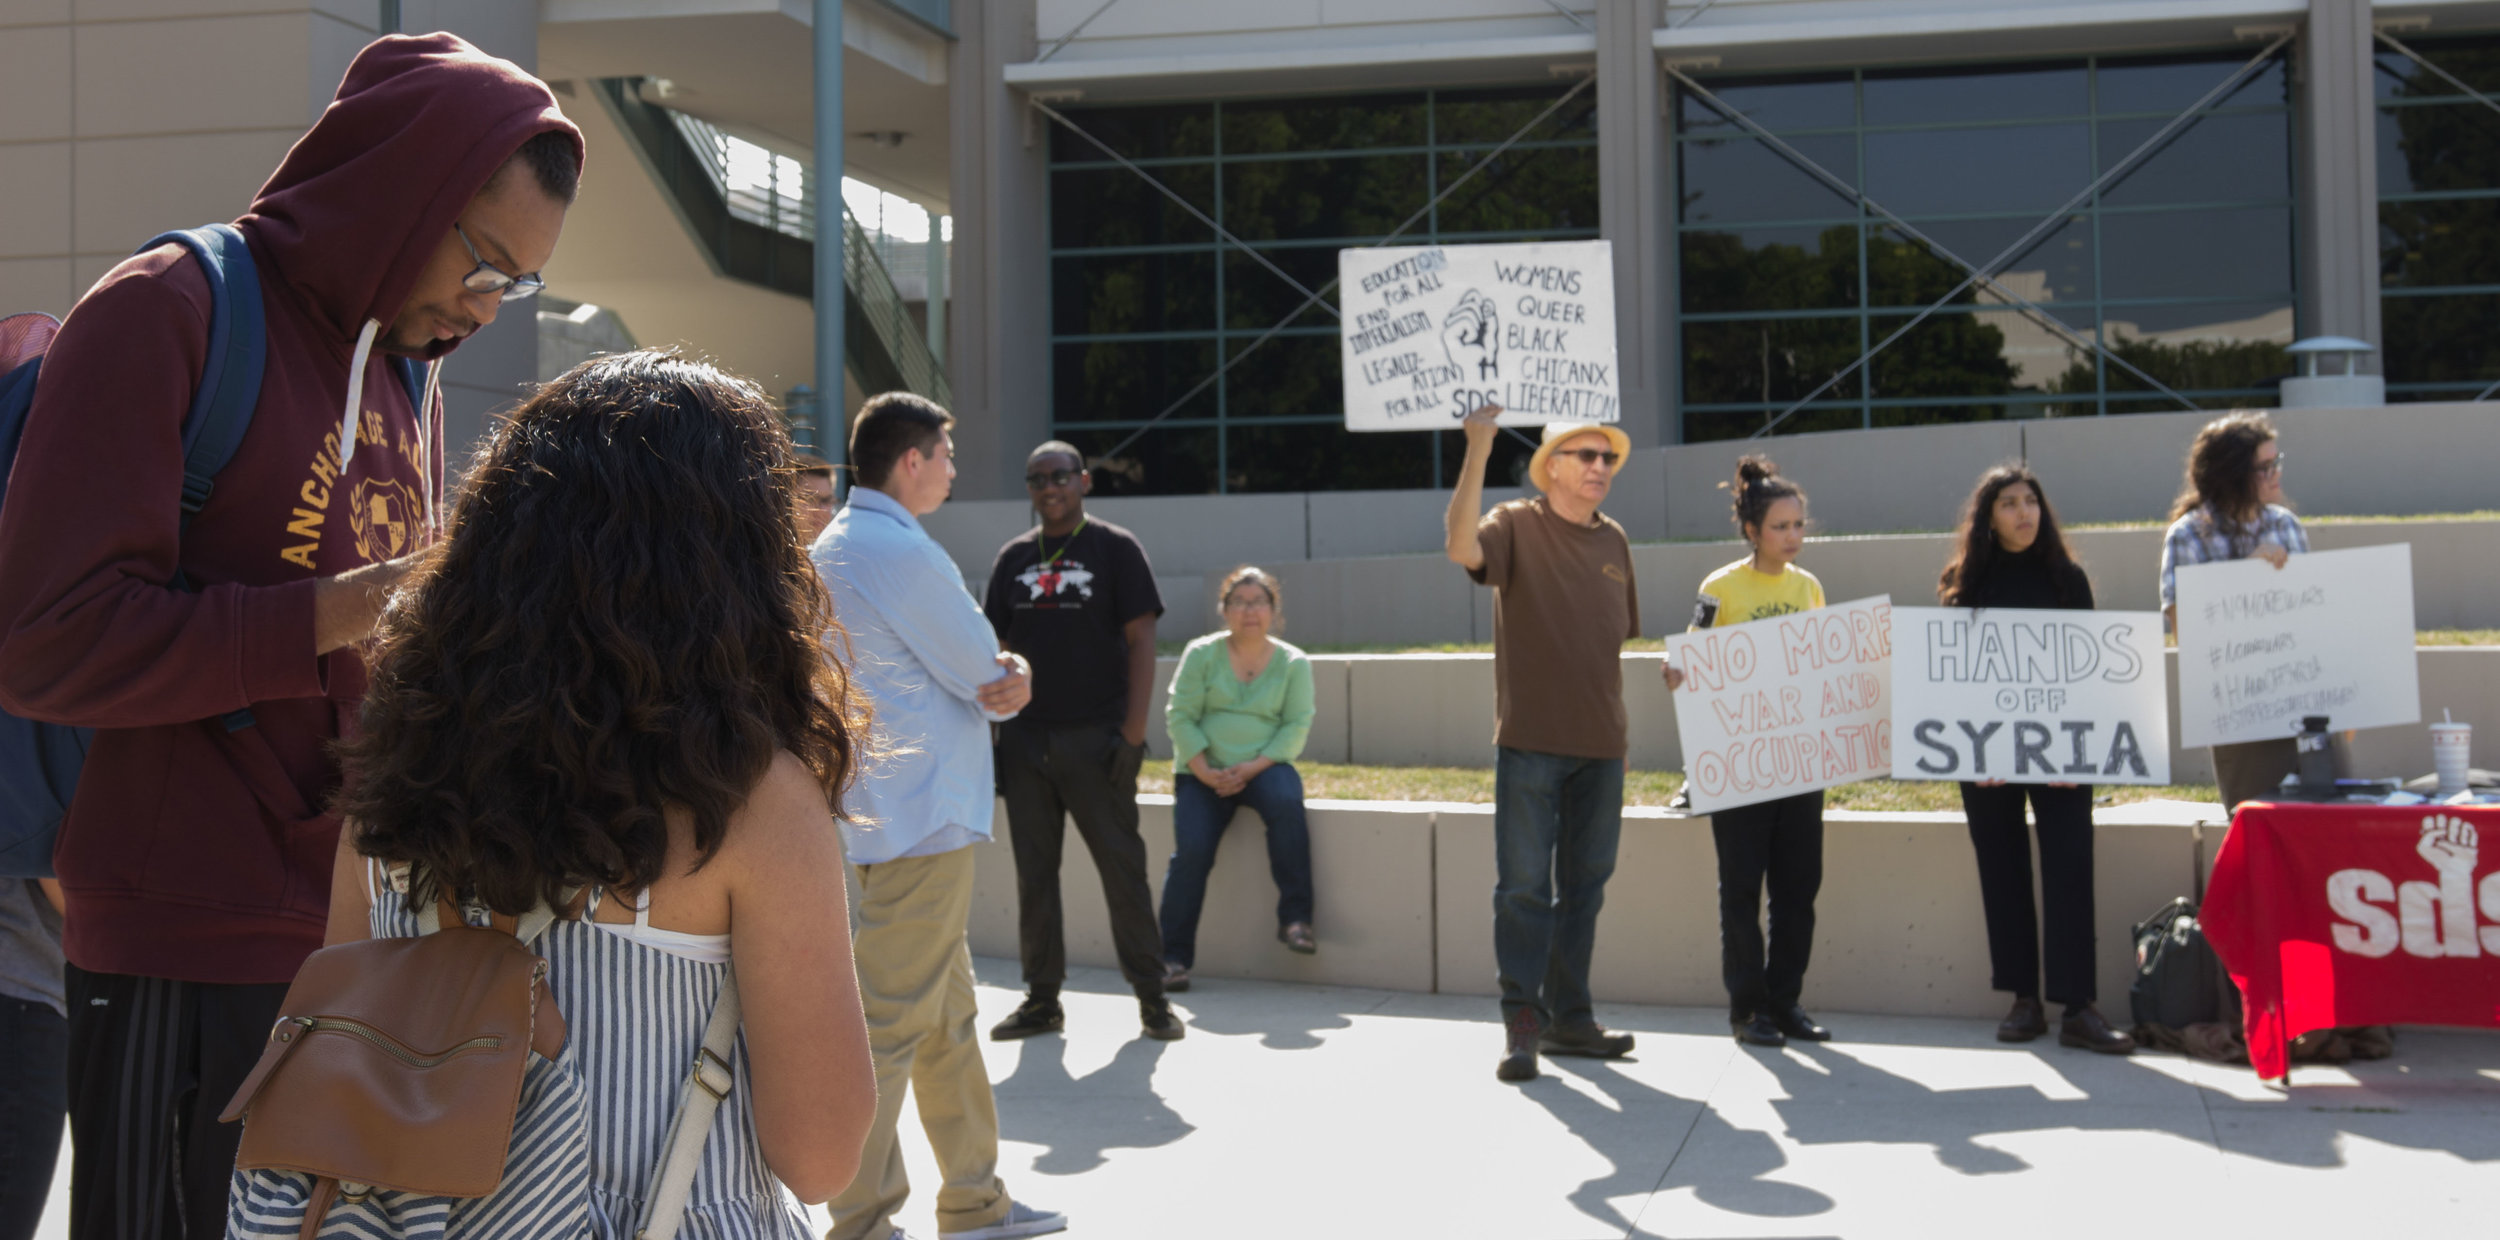 A crowd gathers to gain information and show support at the Hands Off Syria protest at Pasadena City College in Pasadena California on April 11, 2017 (Photo By: Zane Meyer-Thornton)